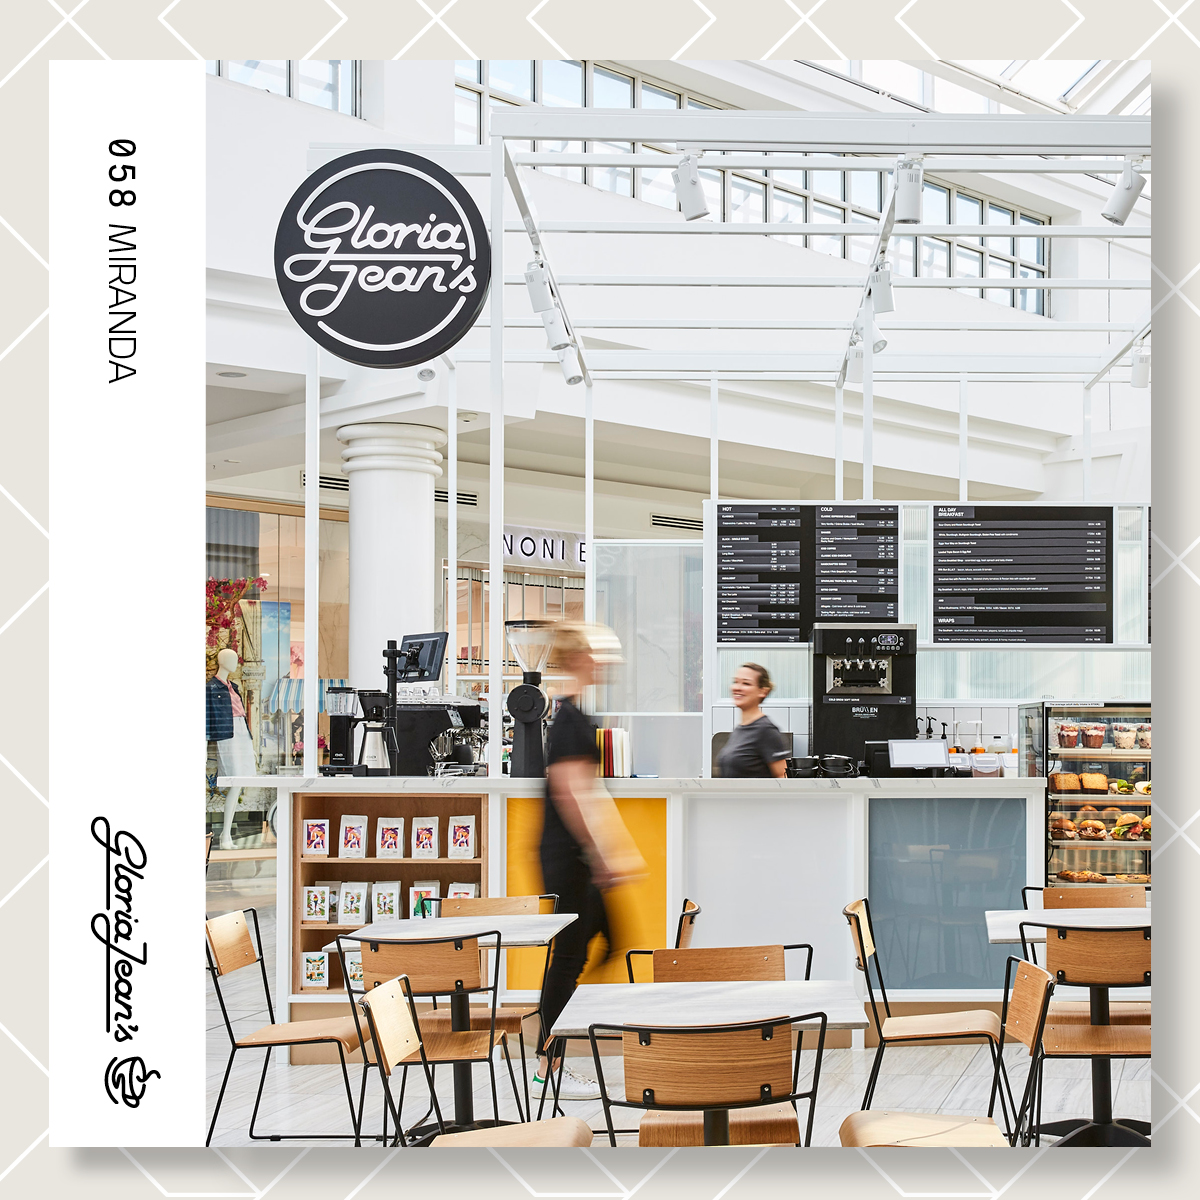 Gloria Jean's Coffees - exciting Corporate Store opportunity in Chermside!